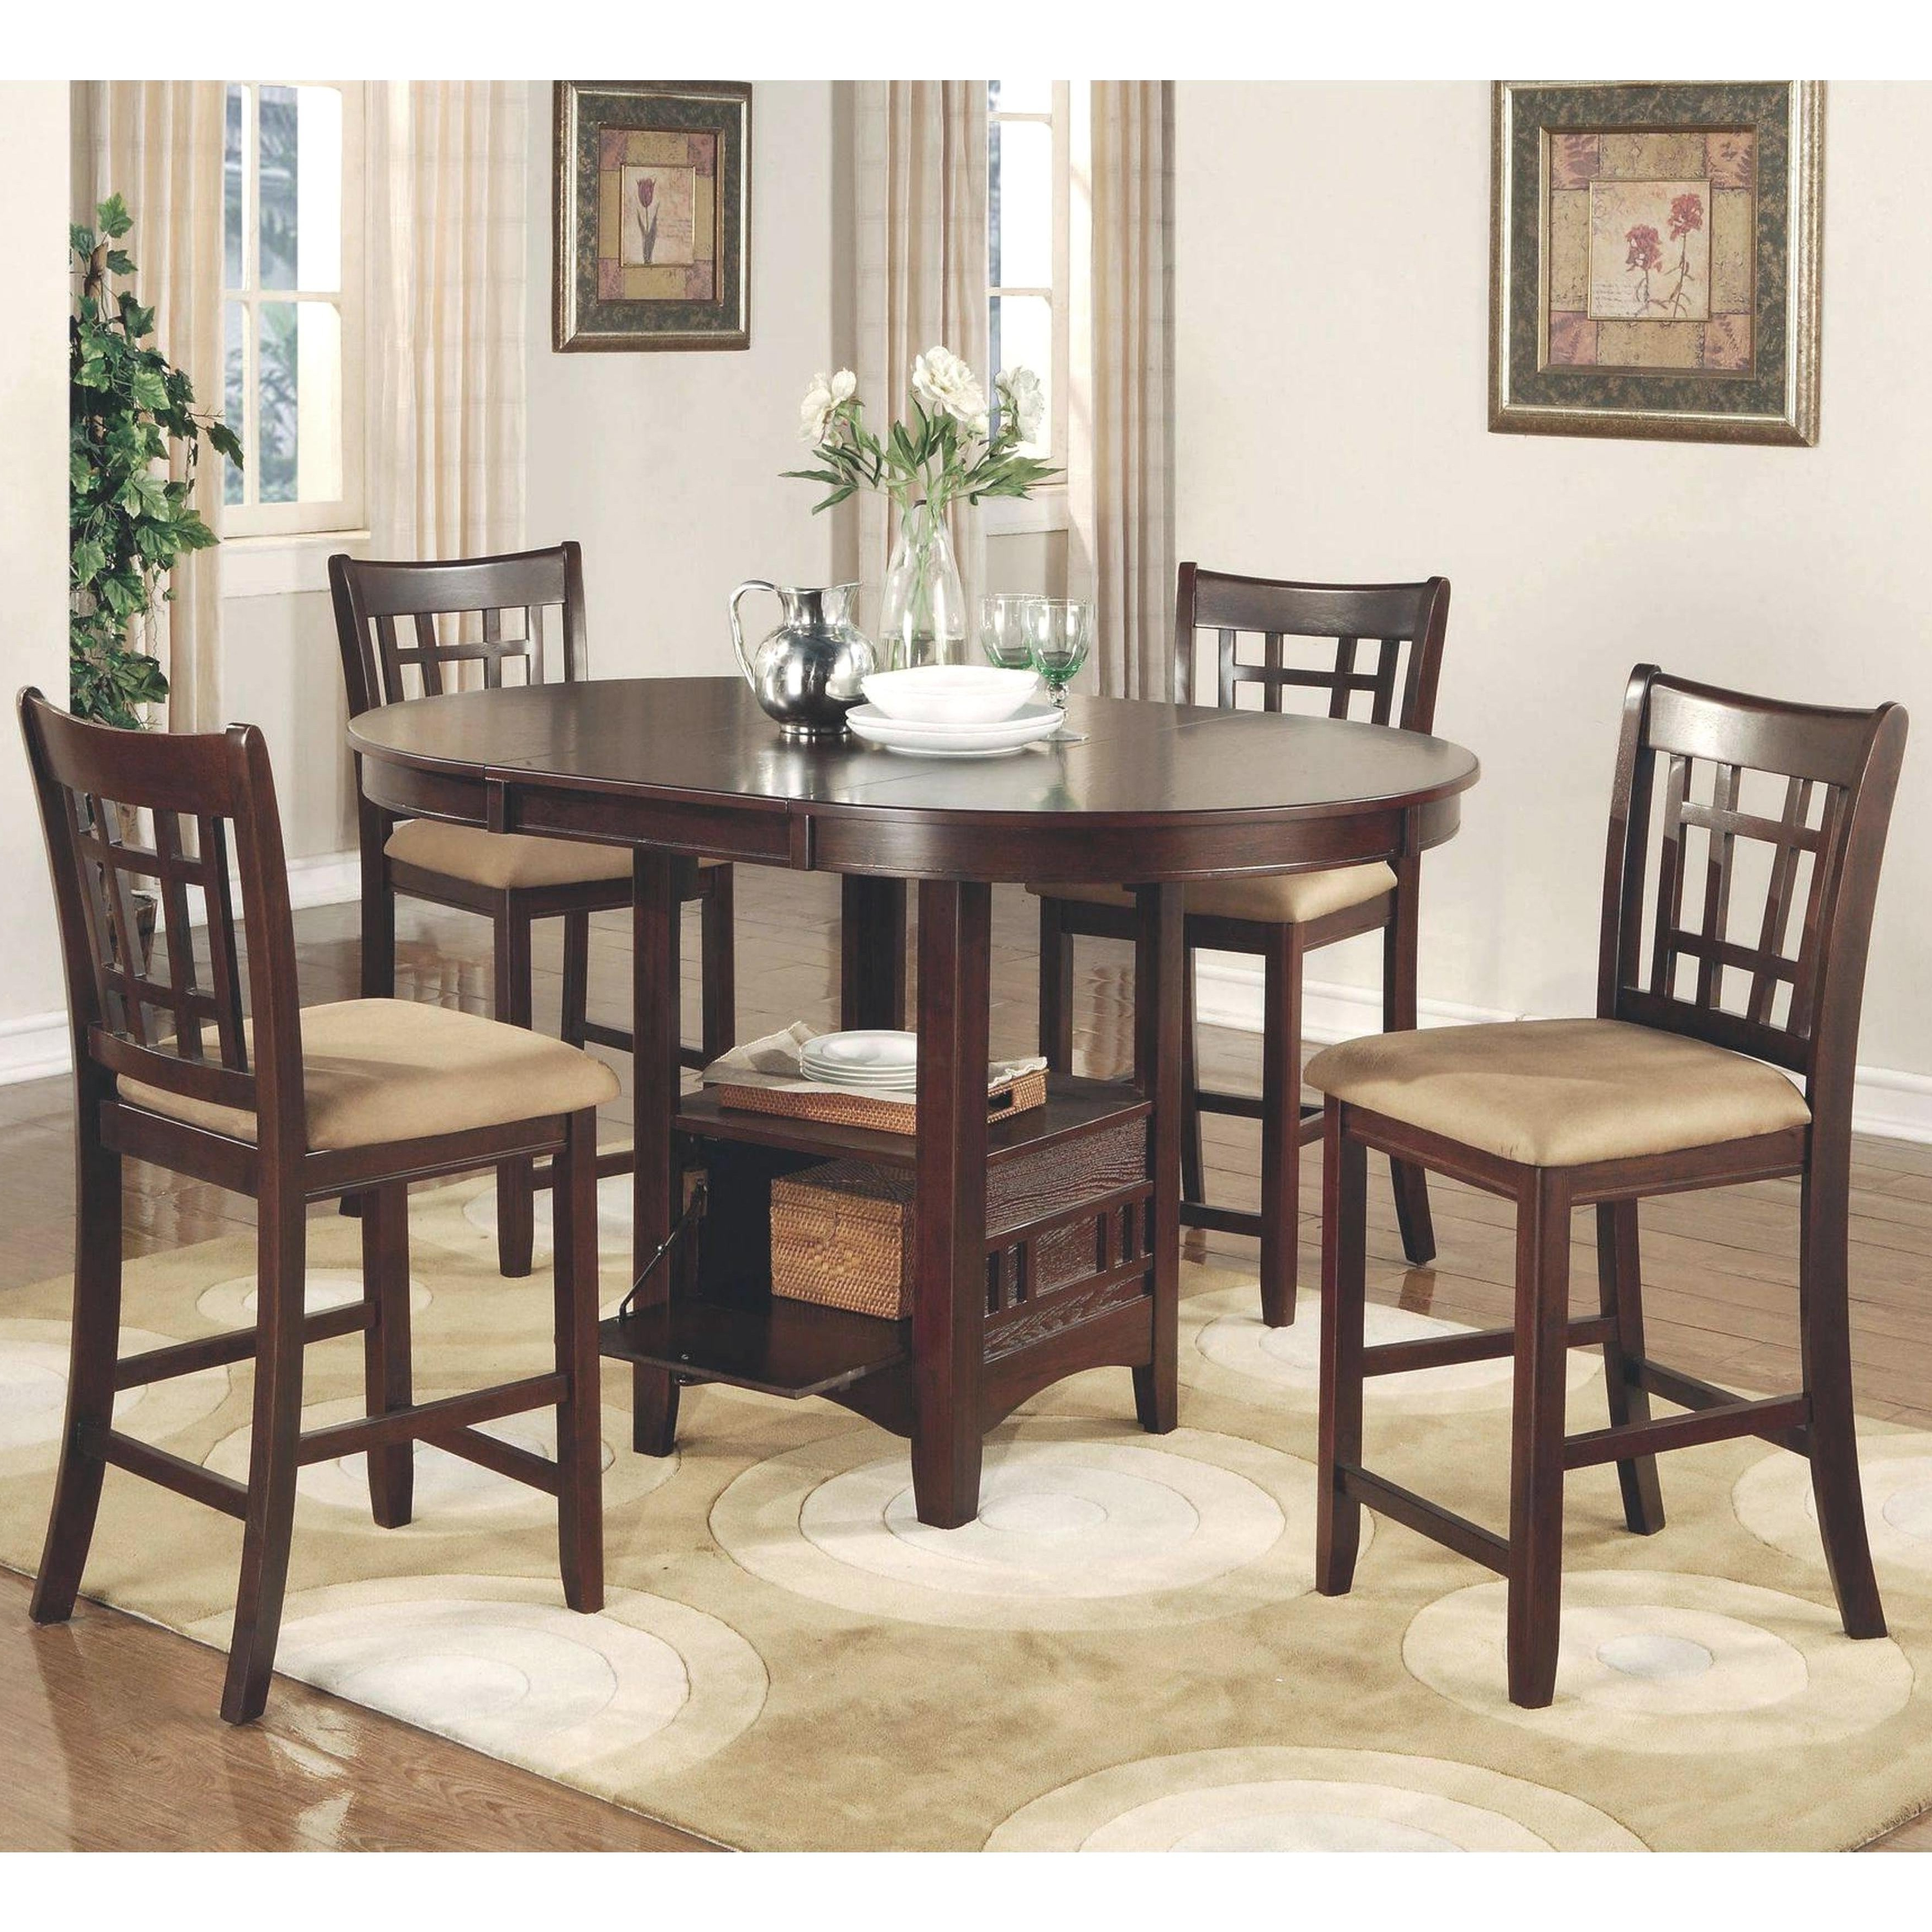 Goodman 5 Piece Solid Wood Dining Sets (Set Of 5) With Most Current Buy 5 Piece Sets, Counter Height Kitchen & Dining Room Sets Online (View 9 of 25)